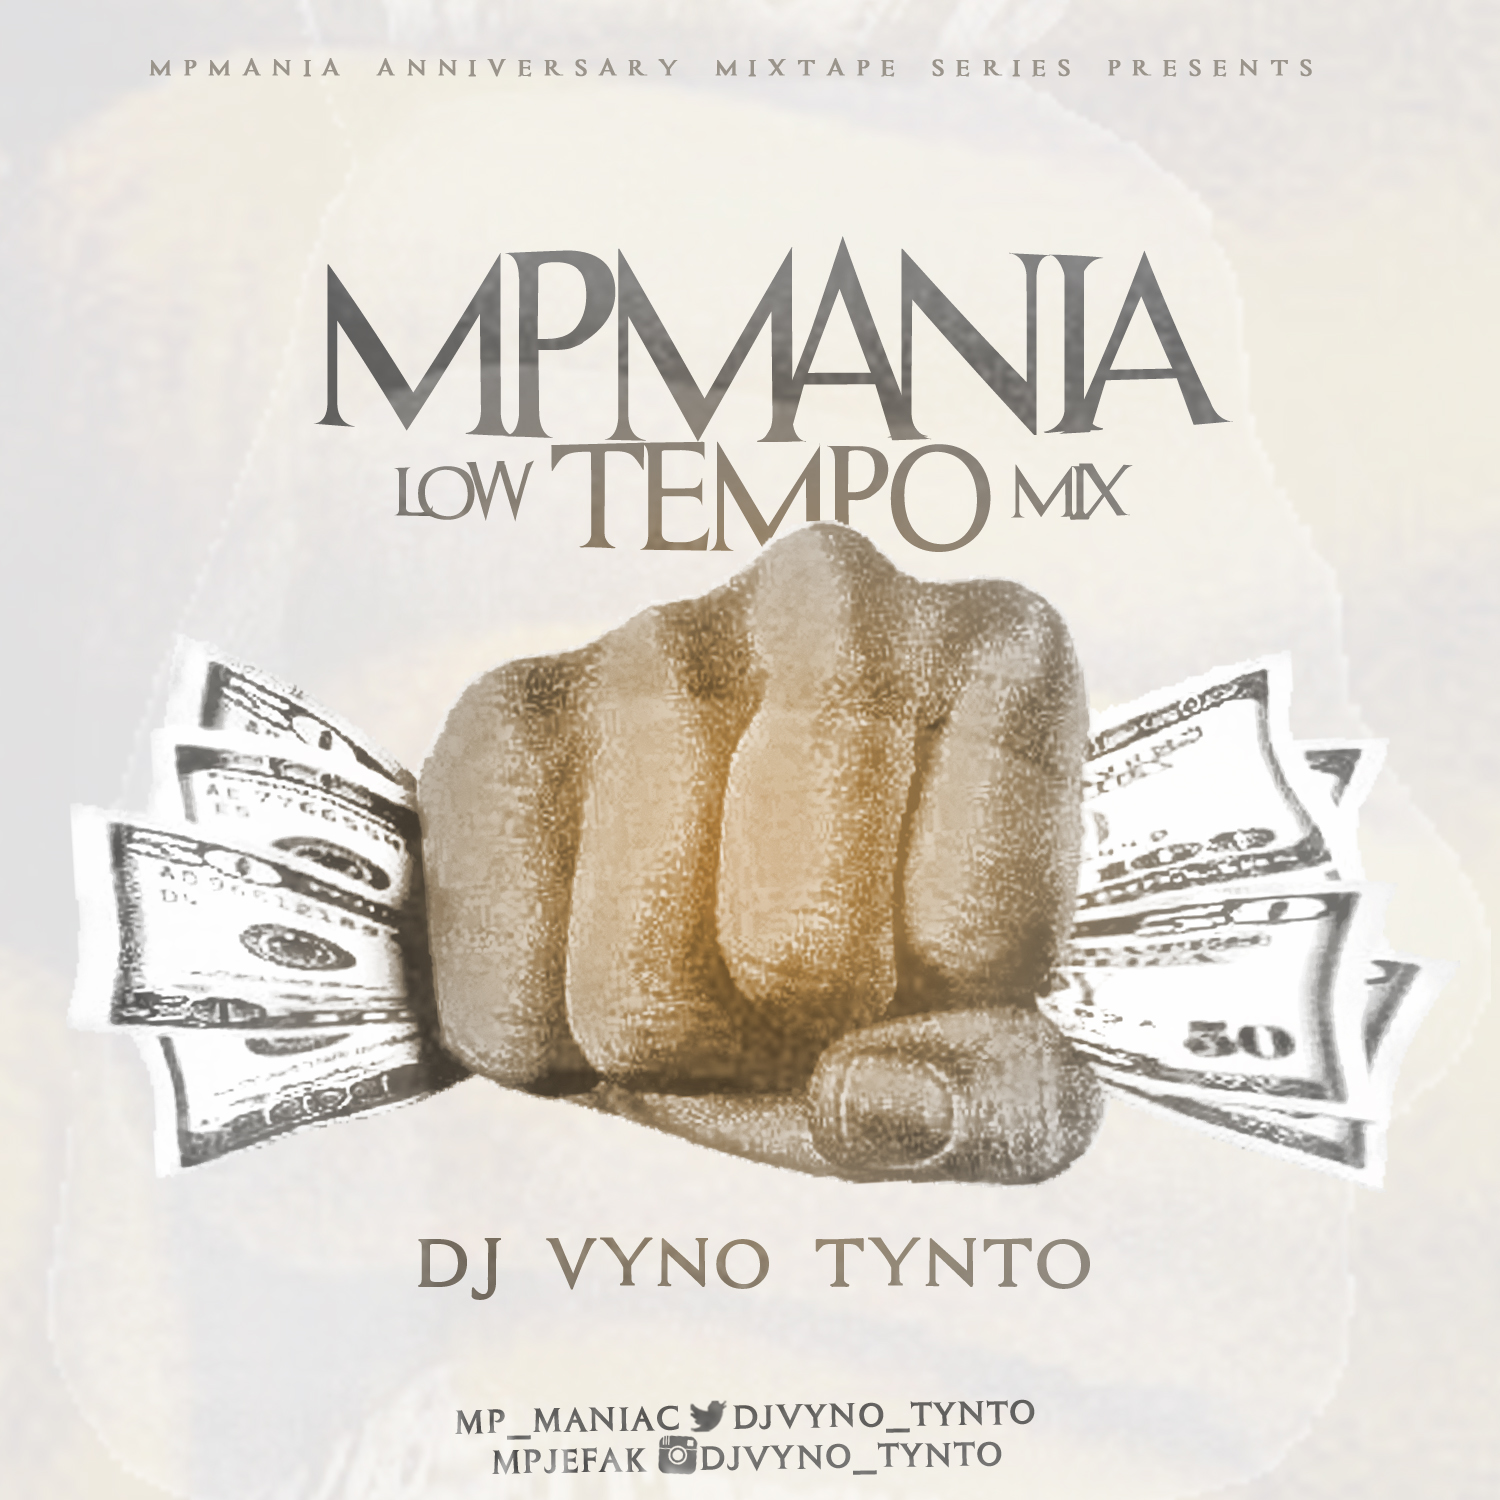 Dj Vynotynto - MPmania Low TEMPO Mix | @djvyno_tynto